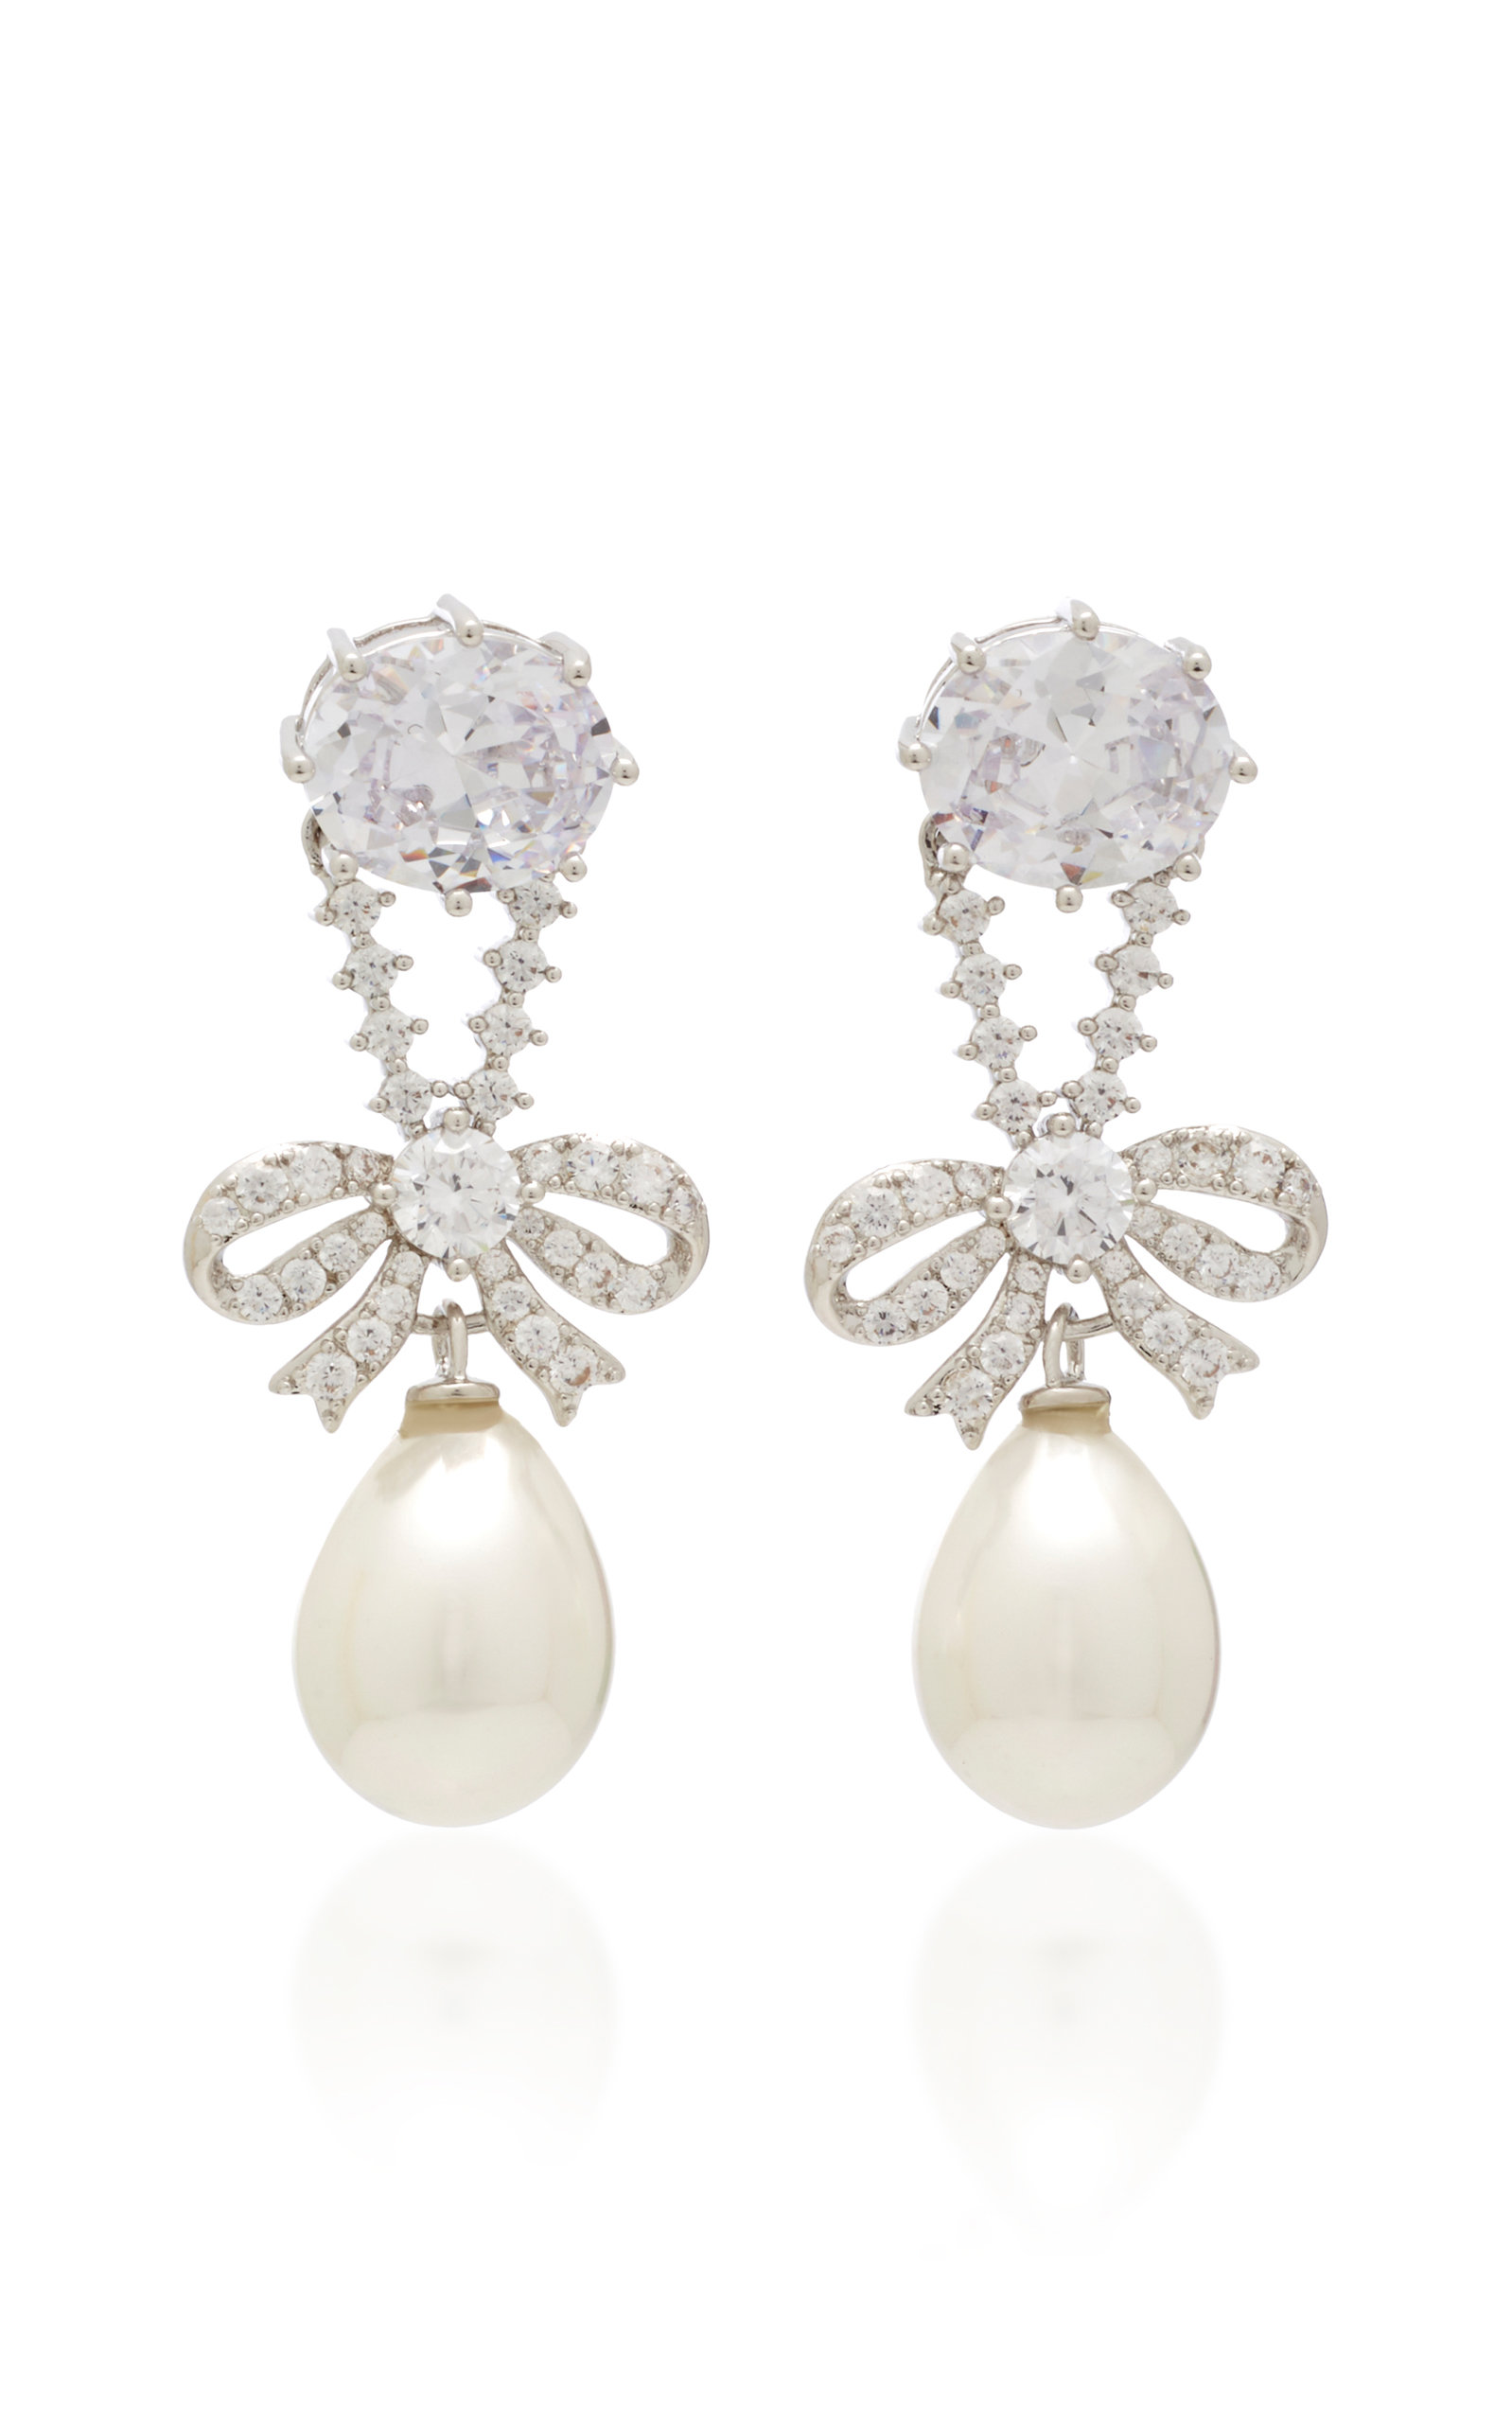 Silver Tone, Crystal And Pearl Earrings by Fallon